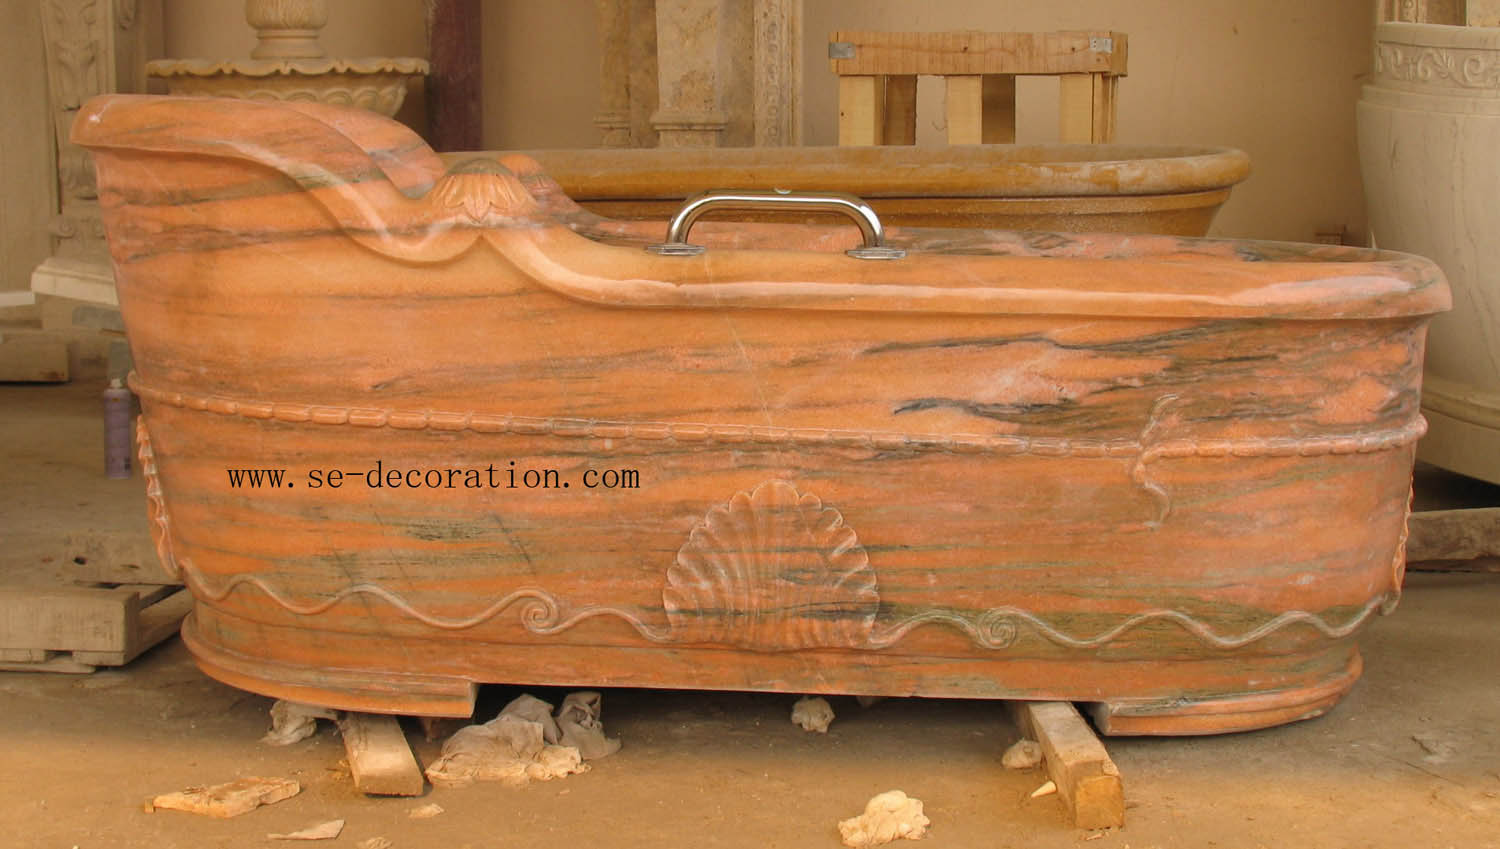 Product name:pink marble bathtub